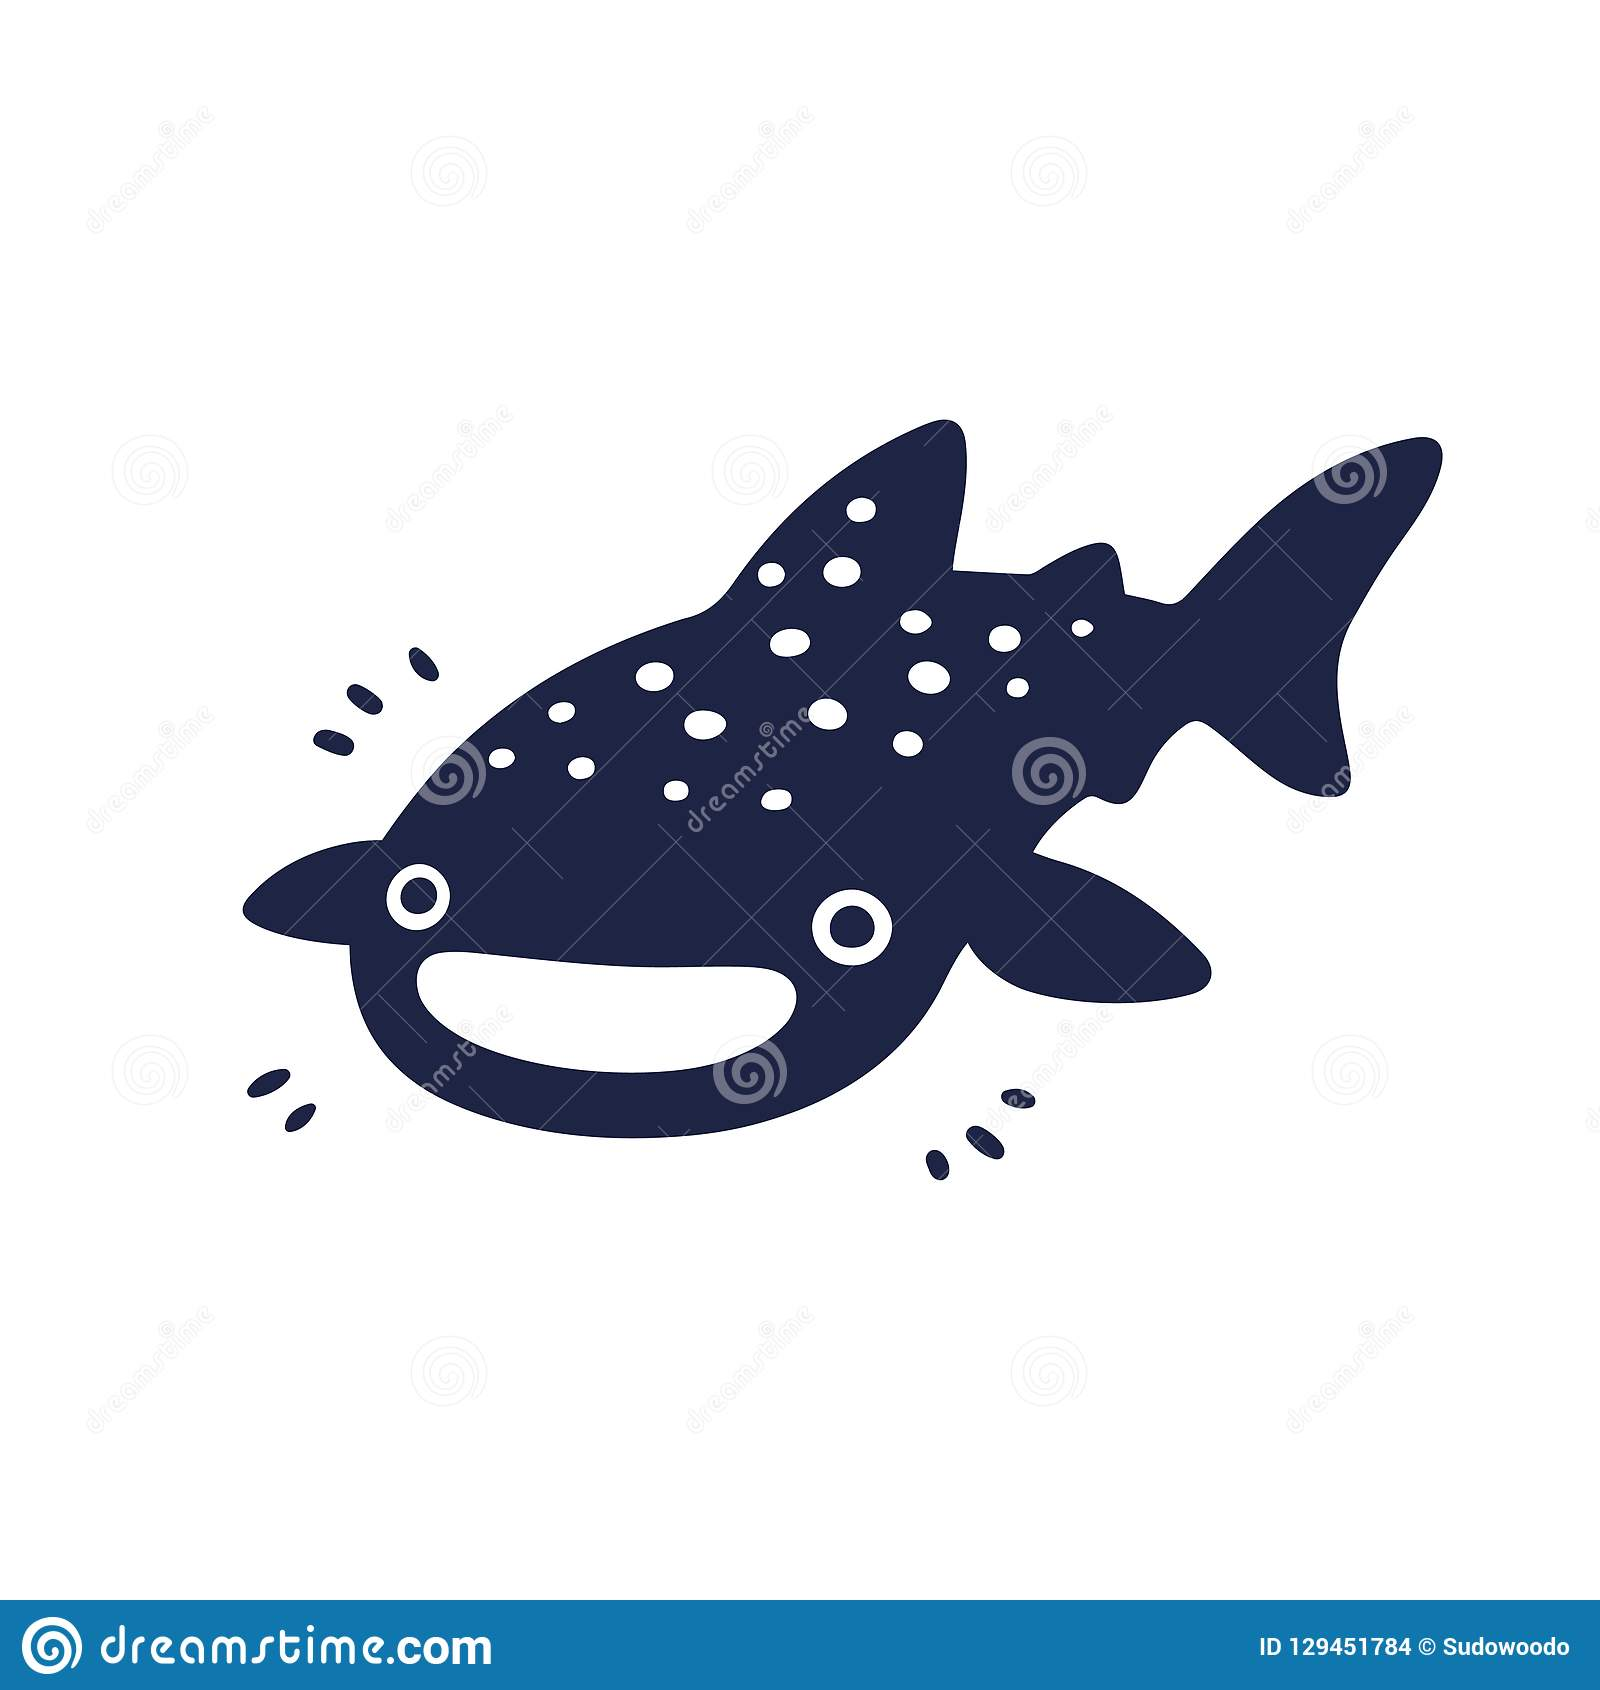 Cute Cartoon Whale Shark Stock Vector Illustration Of Spotted